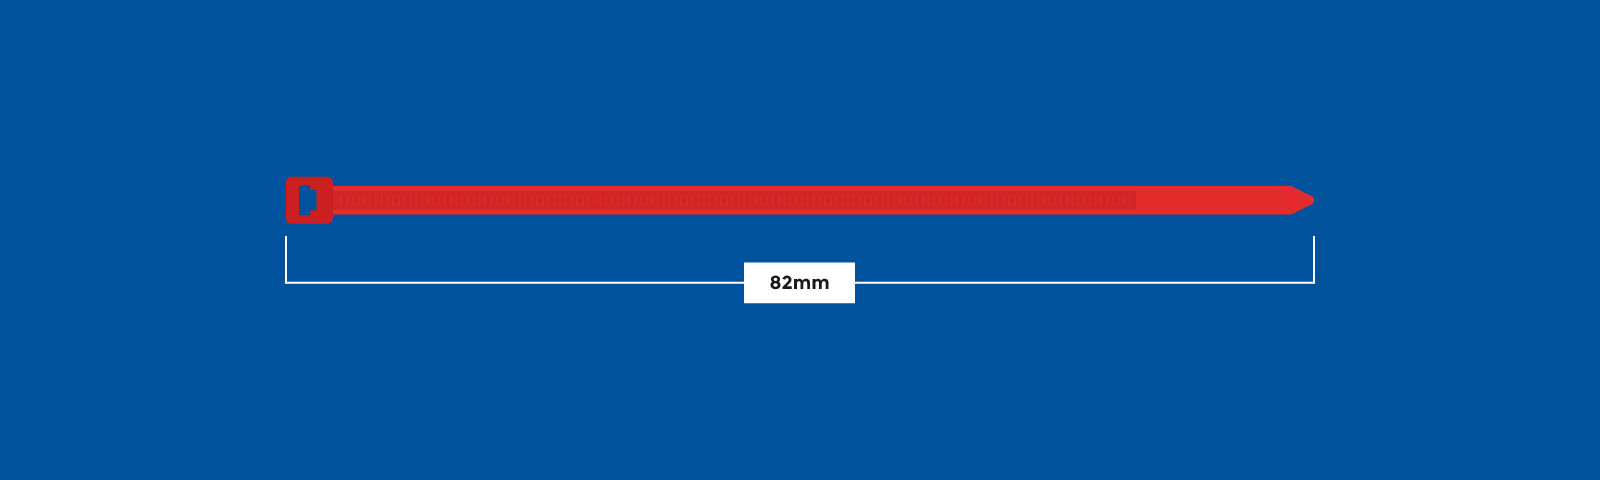 Cable tie size guide